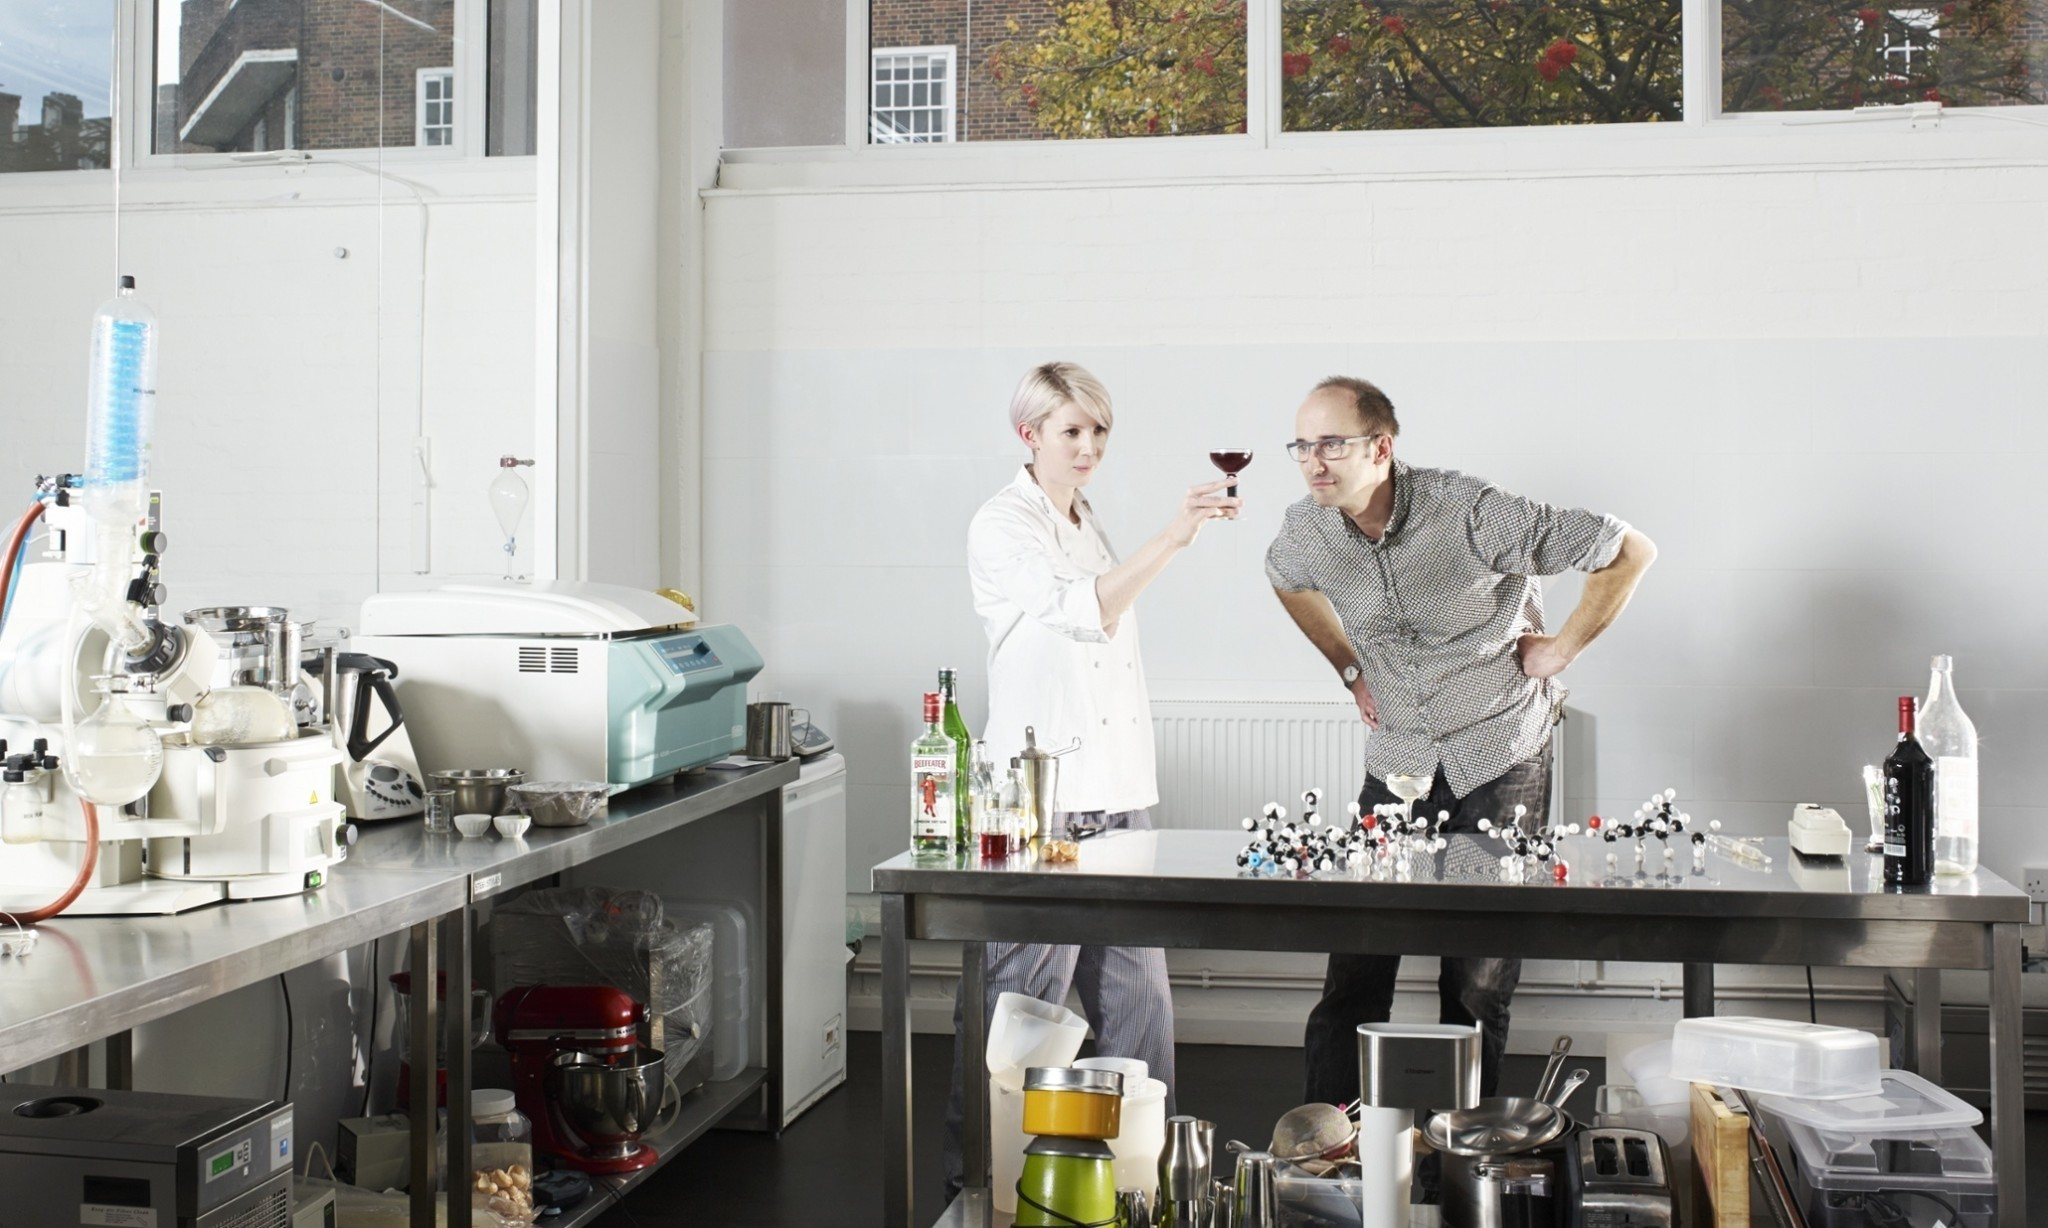 Cocktail craftsmen add a dash of science to the mix